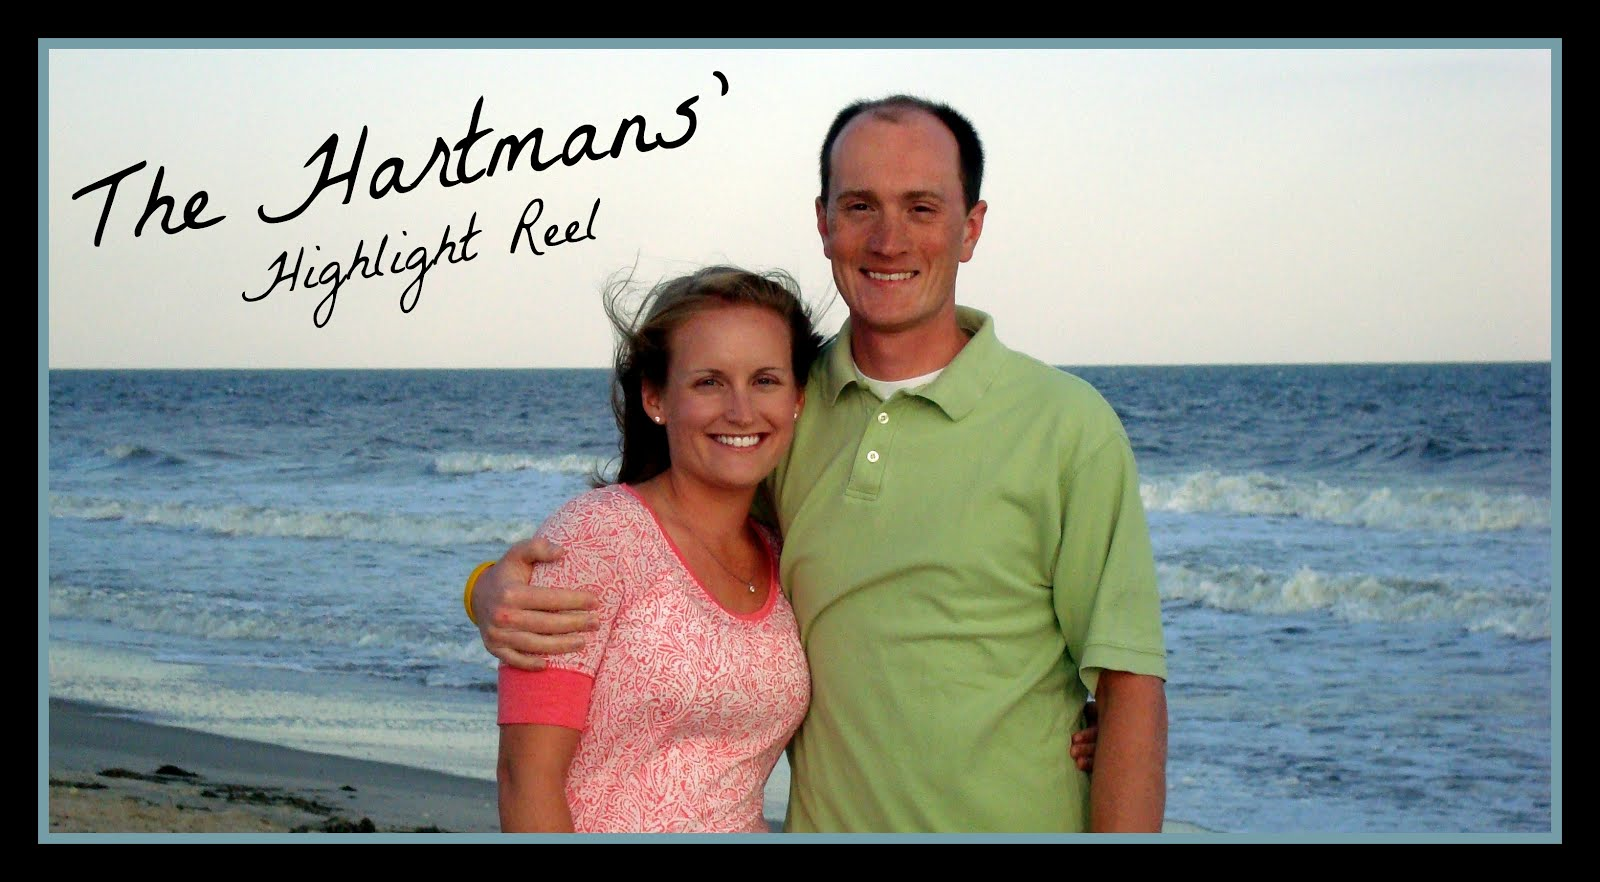 The Hartmans' Highlight Reel